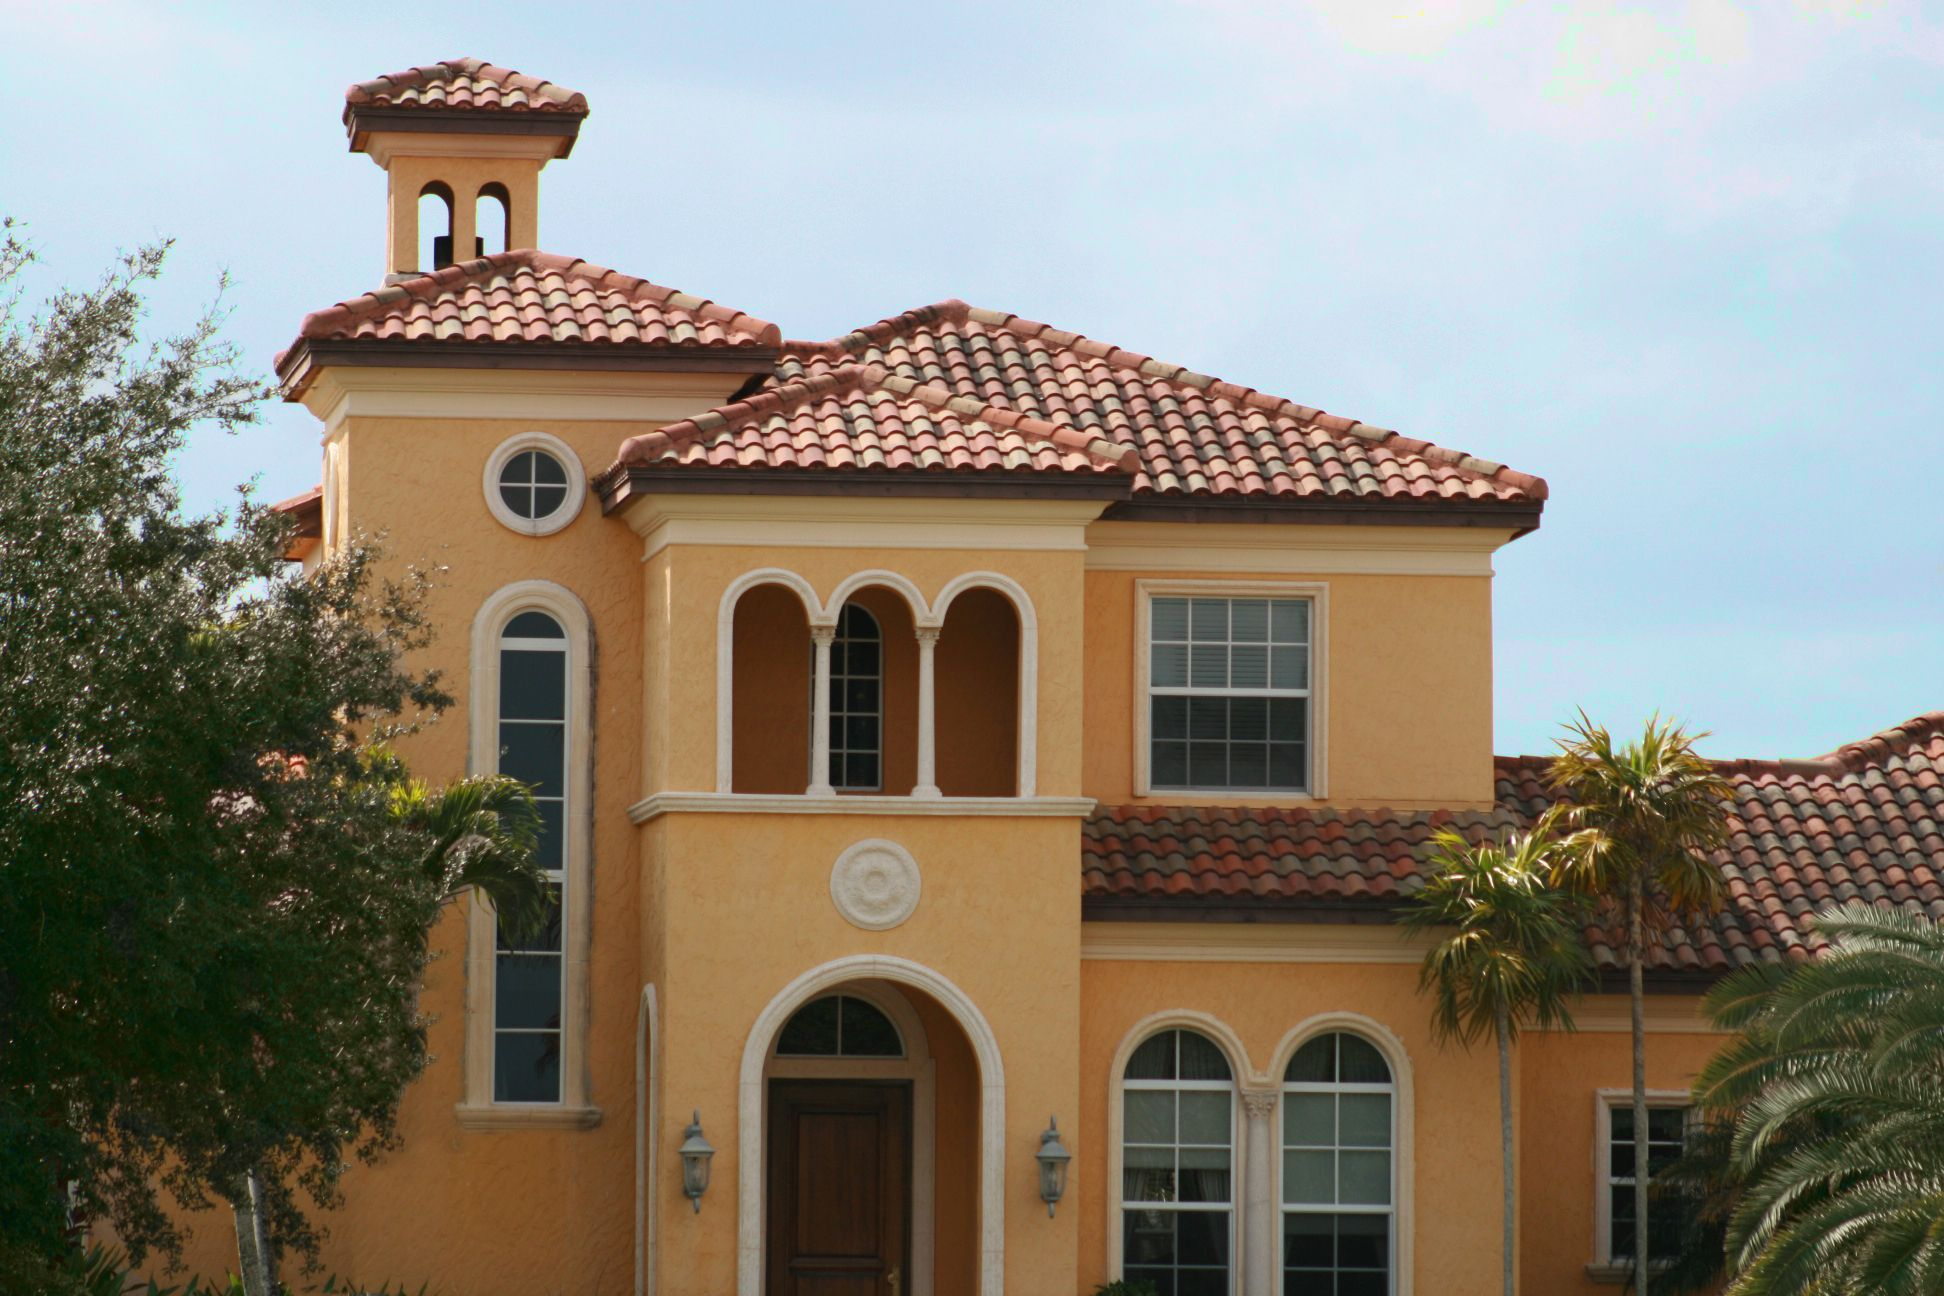 Spanish Style Homes With Red Roof Mediterranean Style Florida